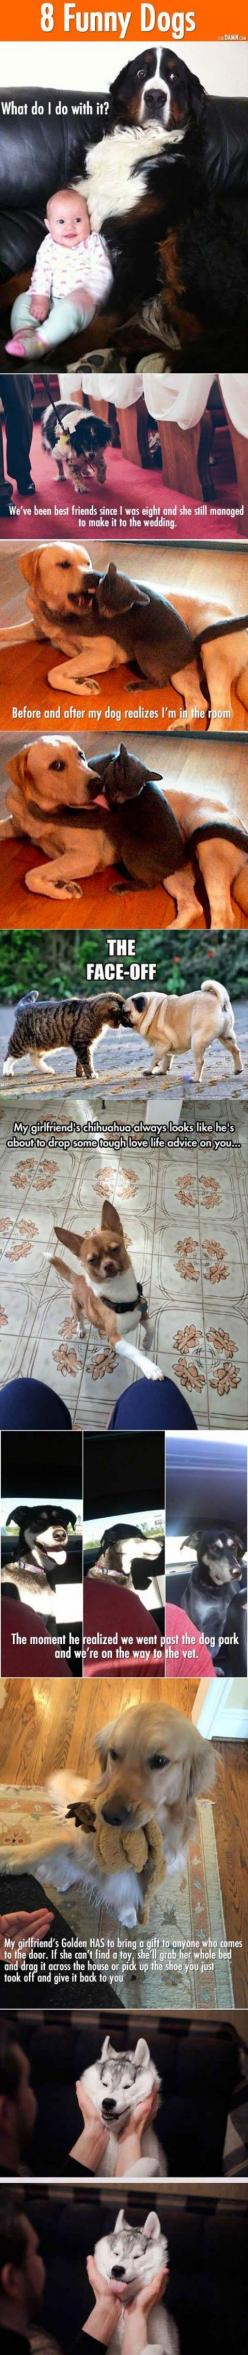 Funny animal pics.: Funny Animals, Adorable Dogs, Aww Funny, Funny Dogs, Funny Animal Pics, Funny Animal Pictures, Funny Pictures, Animals 134, Pict Funny